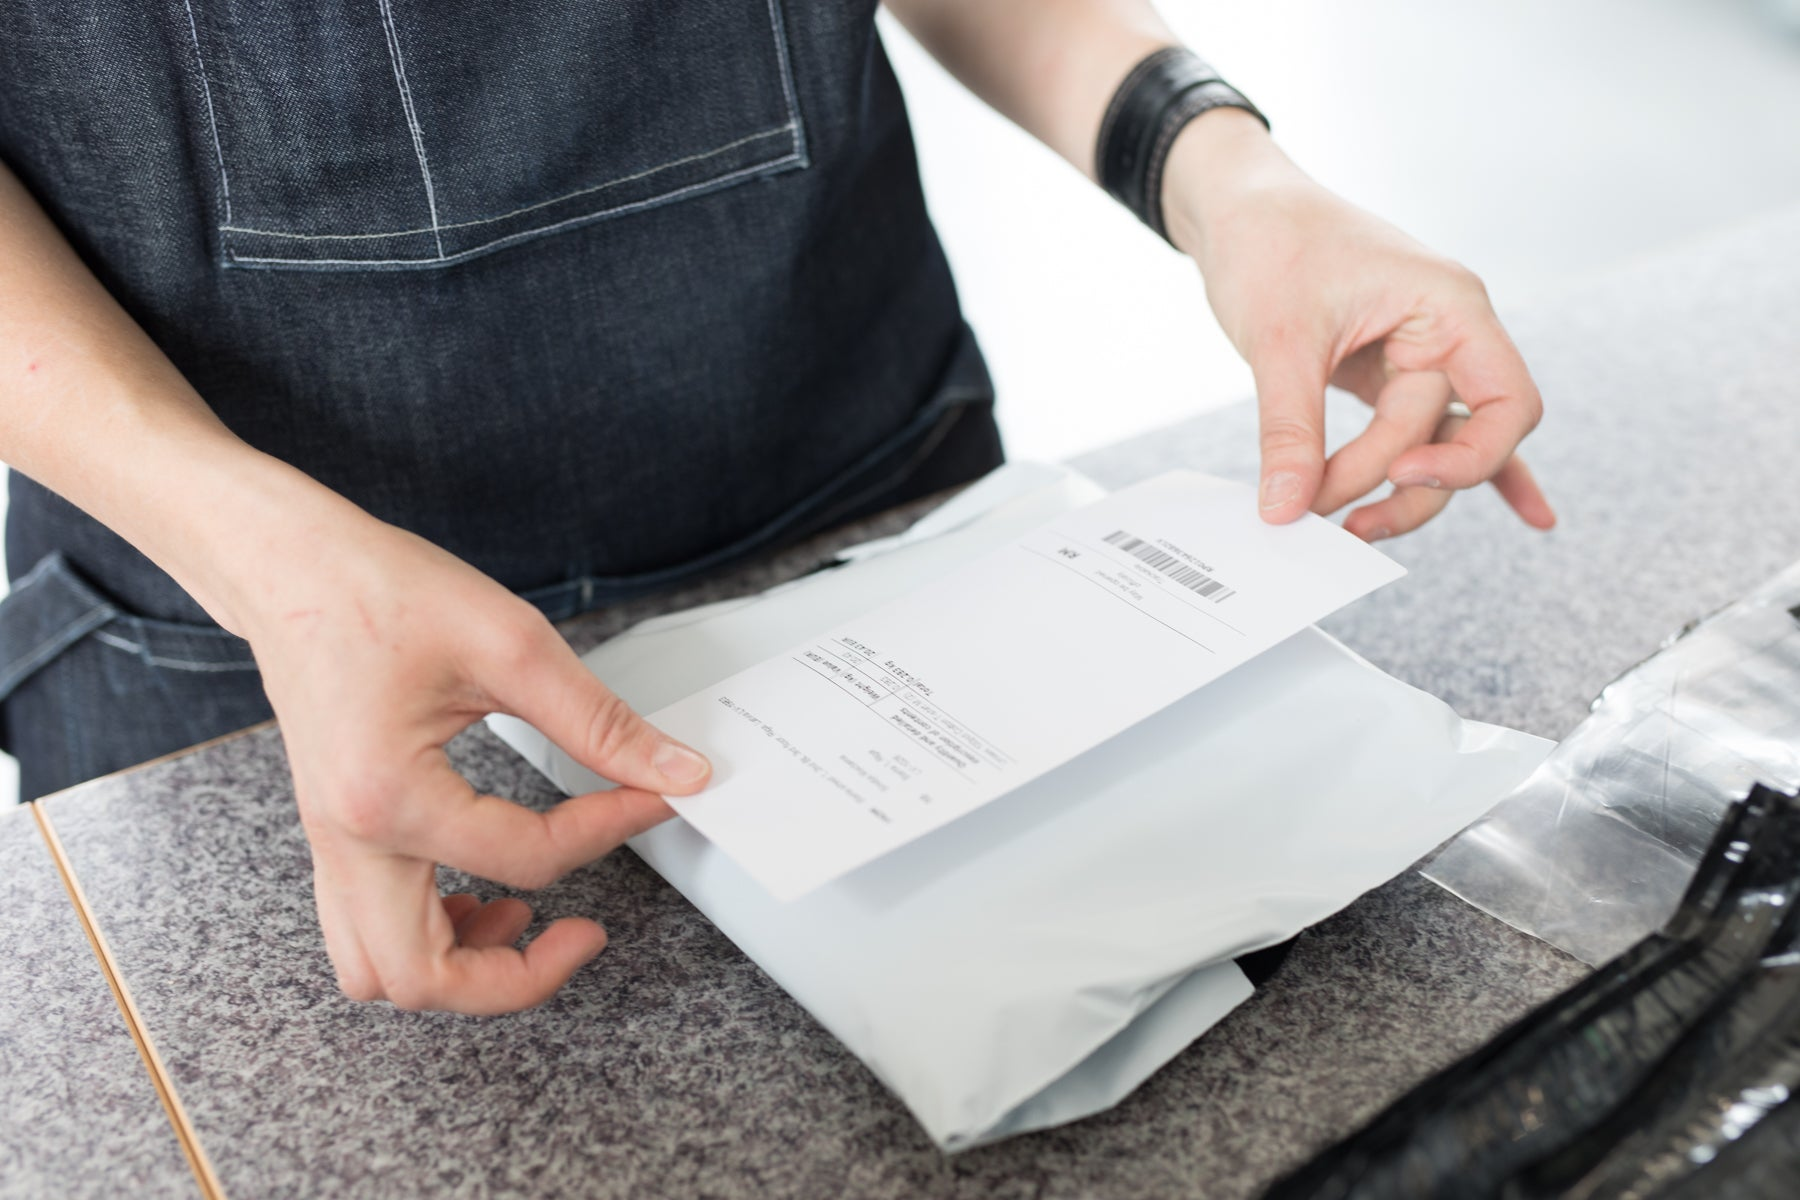 Image of man putting shipping label on package